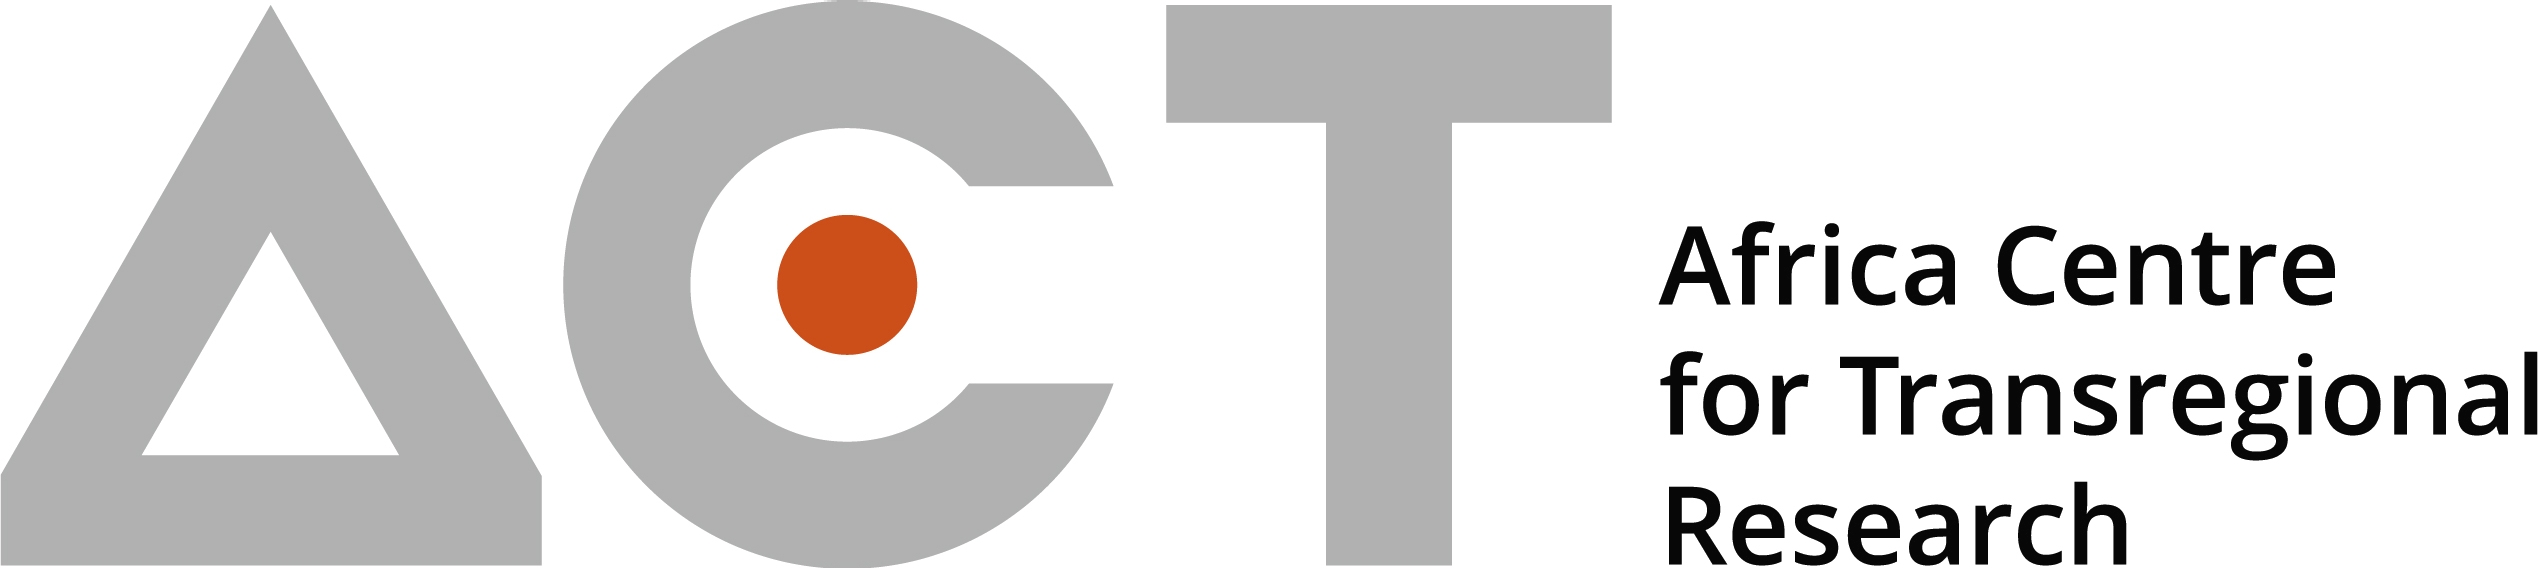 ACT_Logo_2020_RGB Copy.jpg